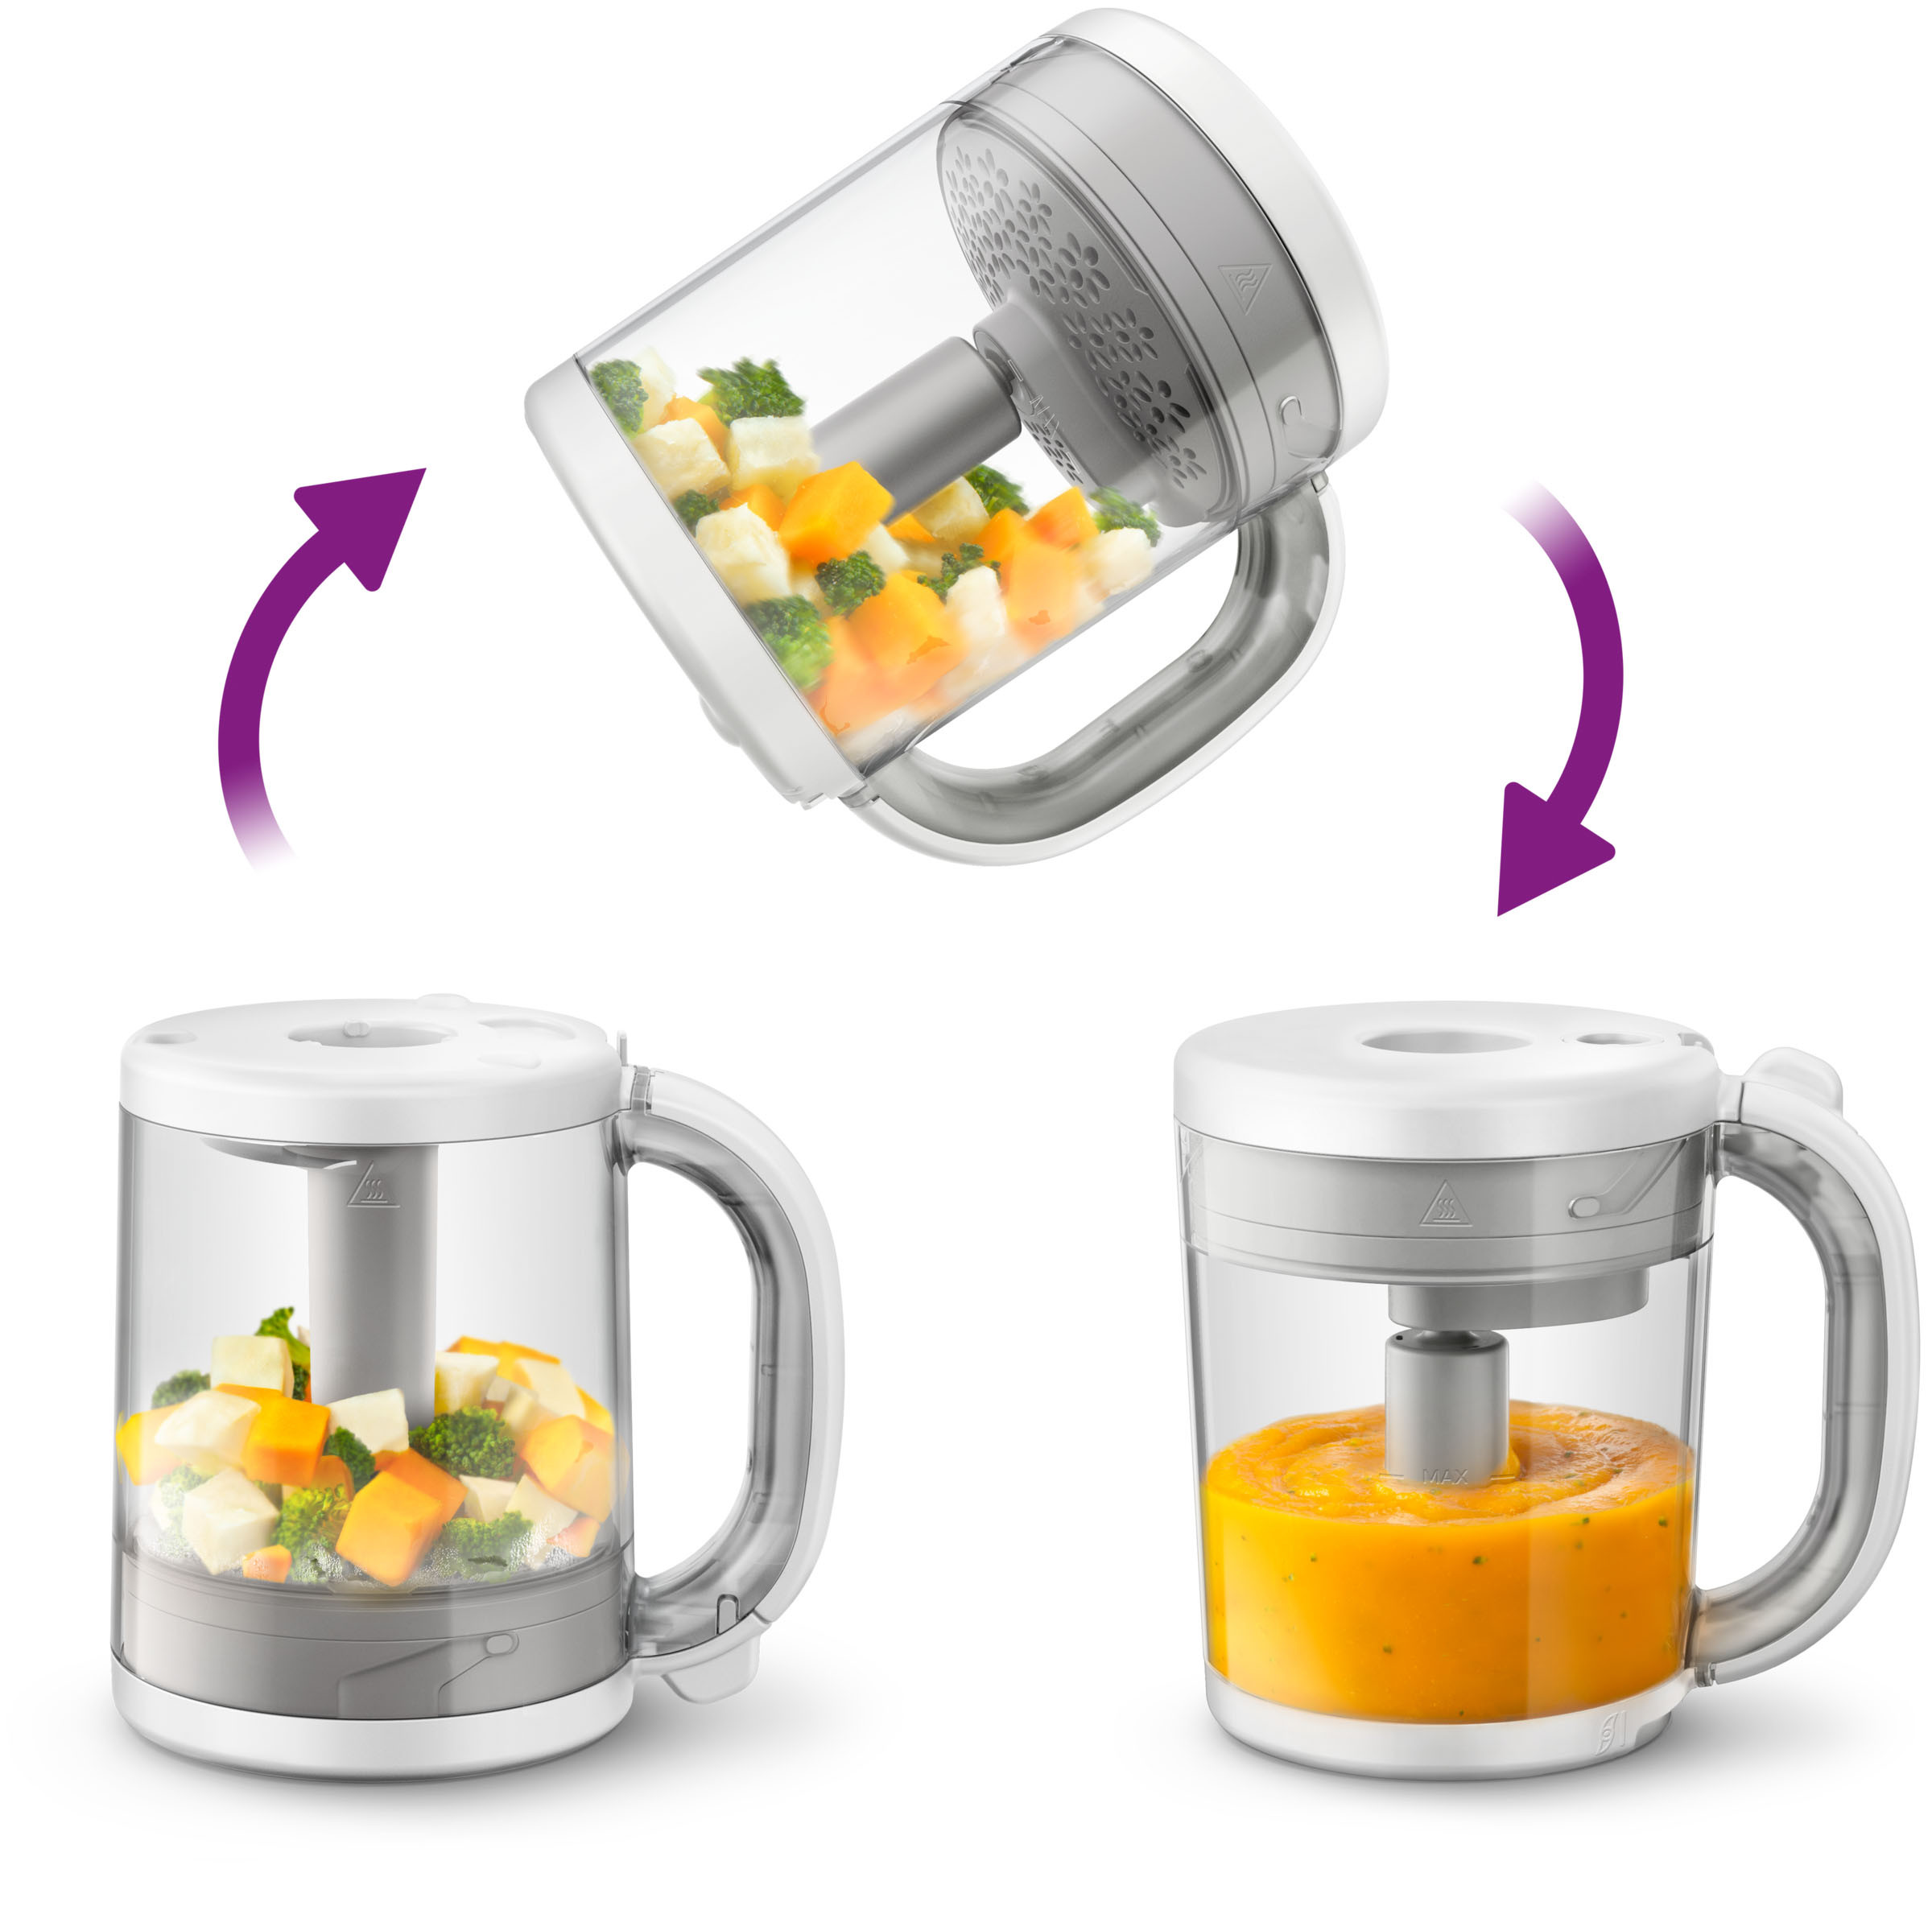 Philips Avent 4 in 1 Healthy Baby Food Maker.